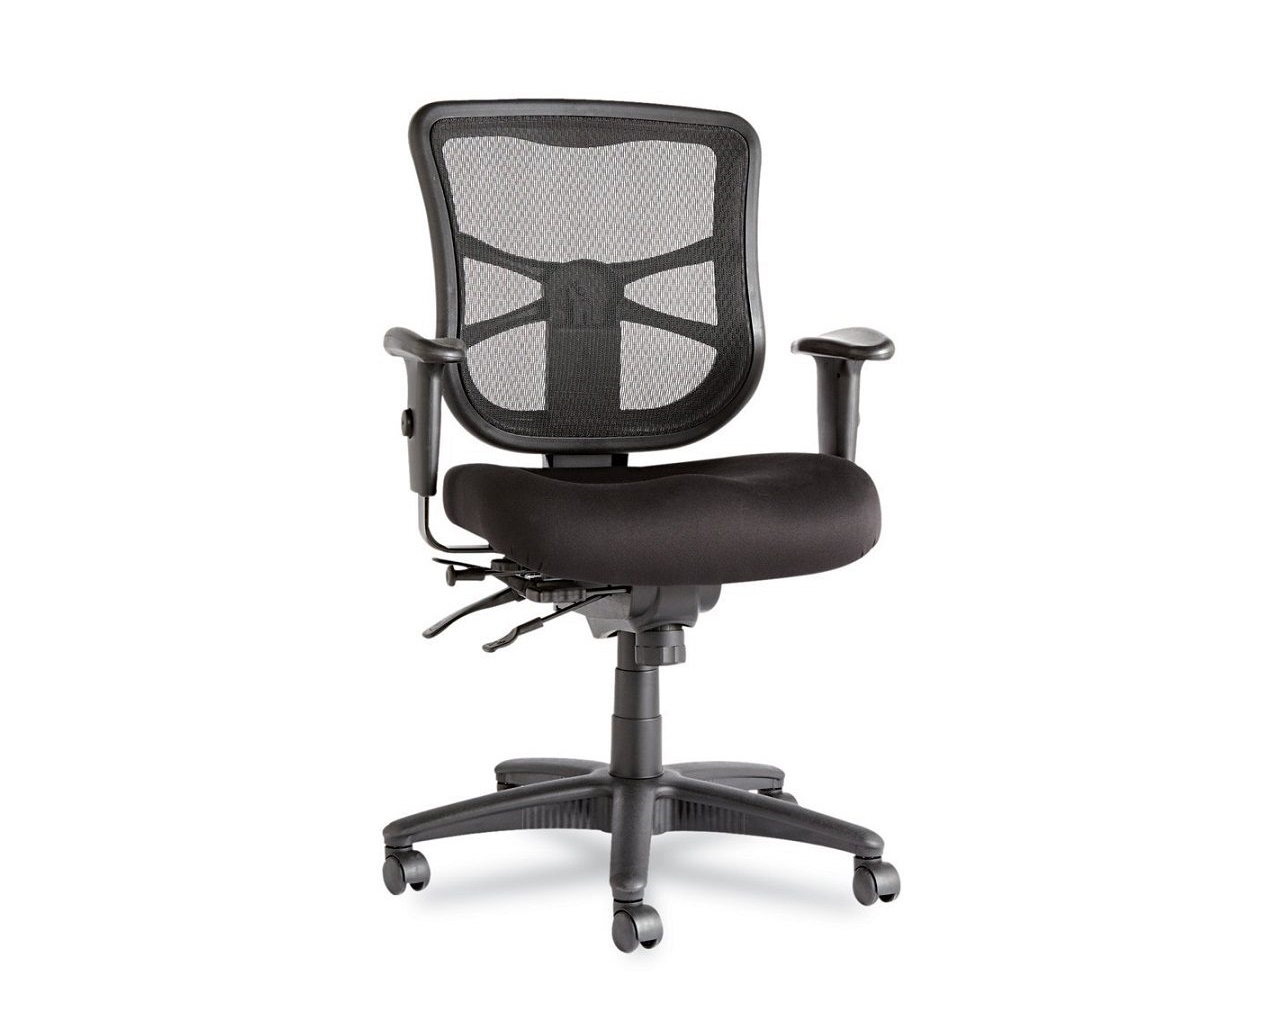 Best Office Chair Under $200 IN 2020 REVIEWS